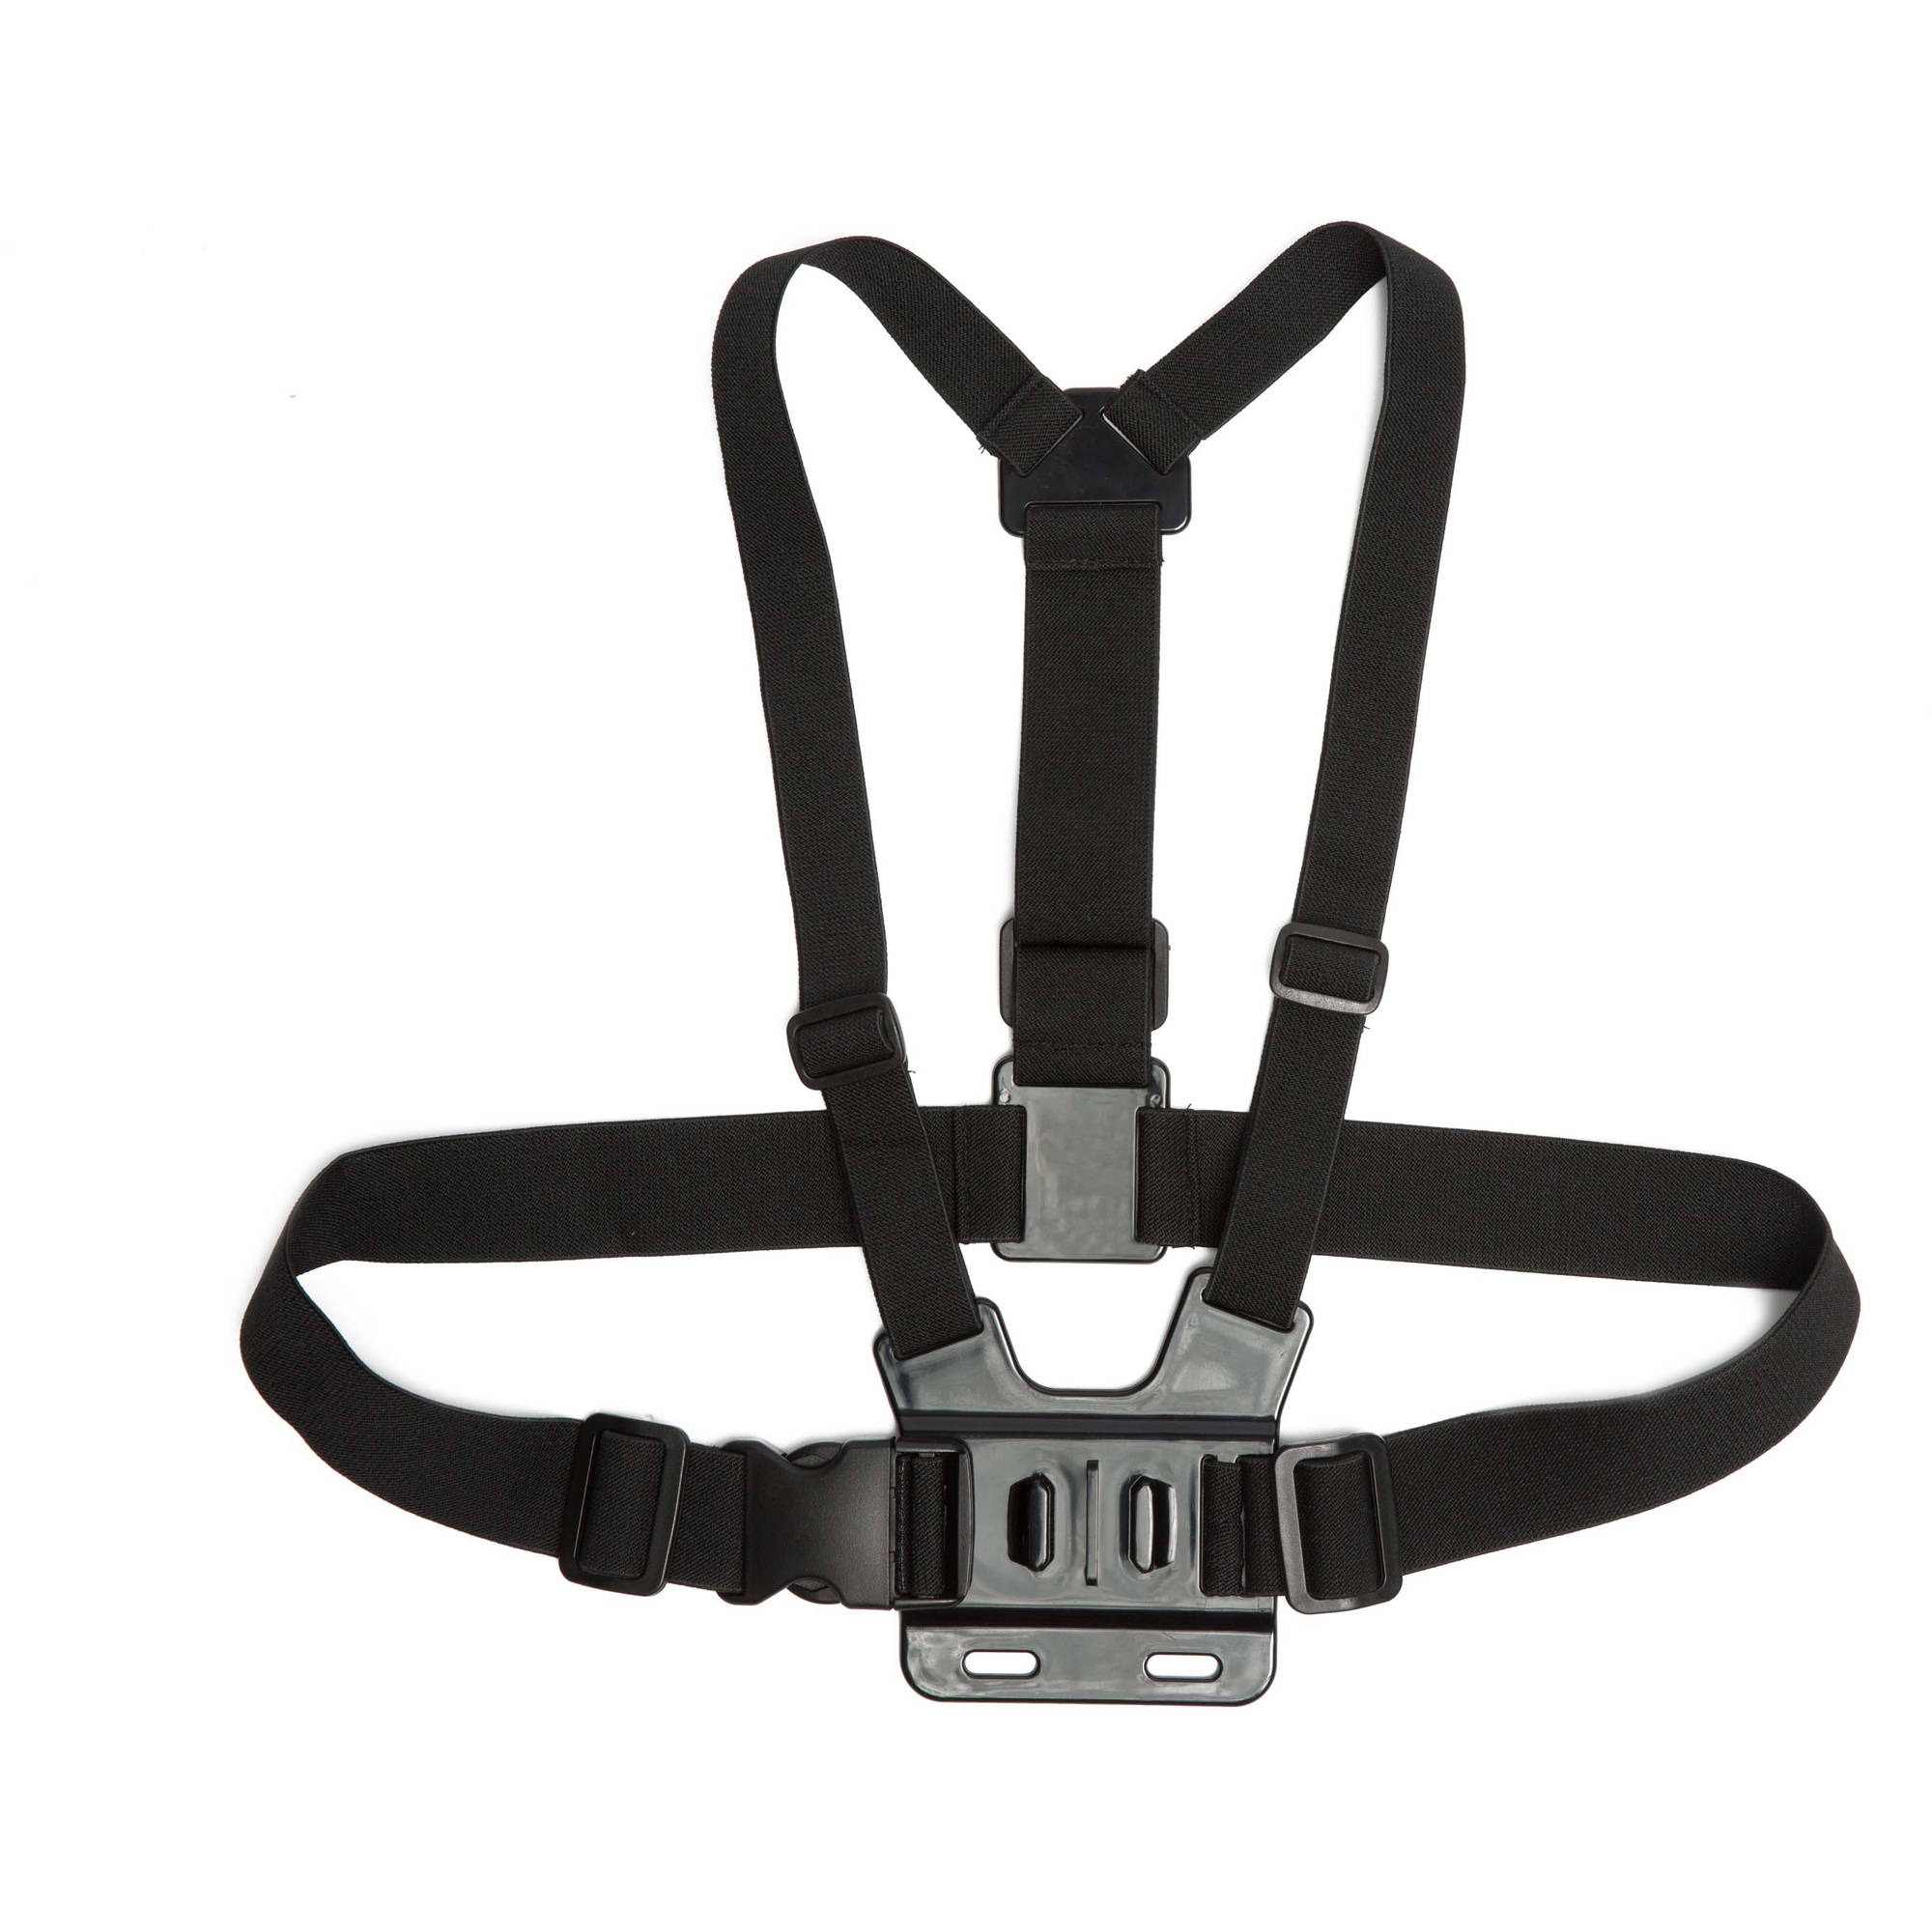 KAYATA Chest and Head strap for Gopro Hero